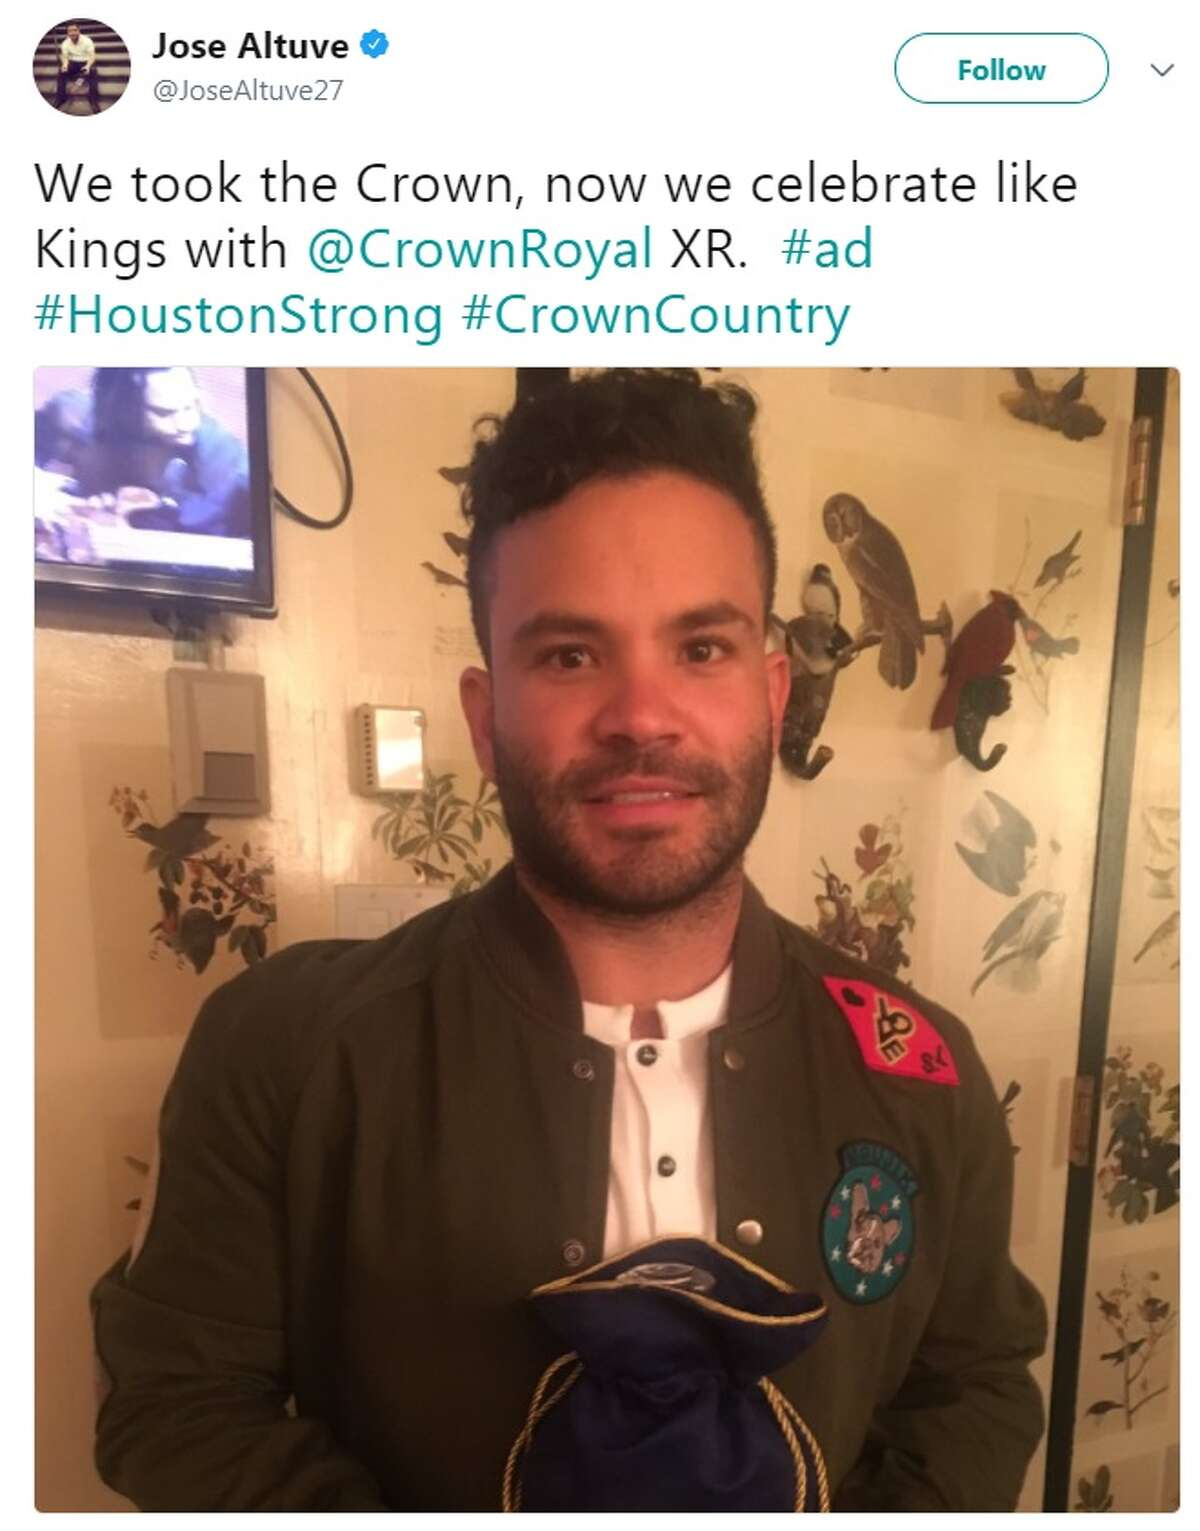 Jose Altuve tweeted he would be celebrating the Astros' World Series win by drinking Crown Royal.